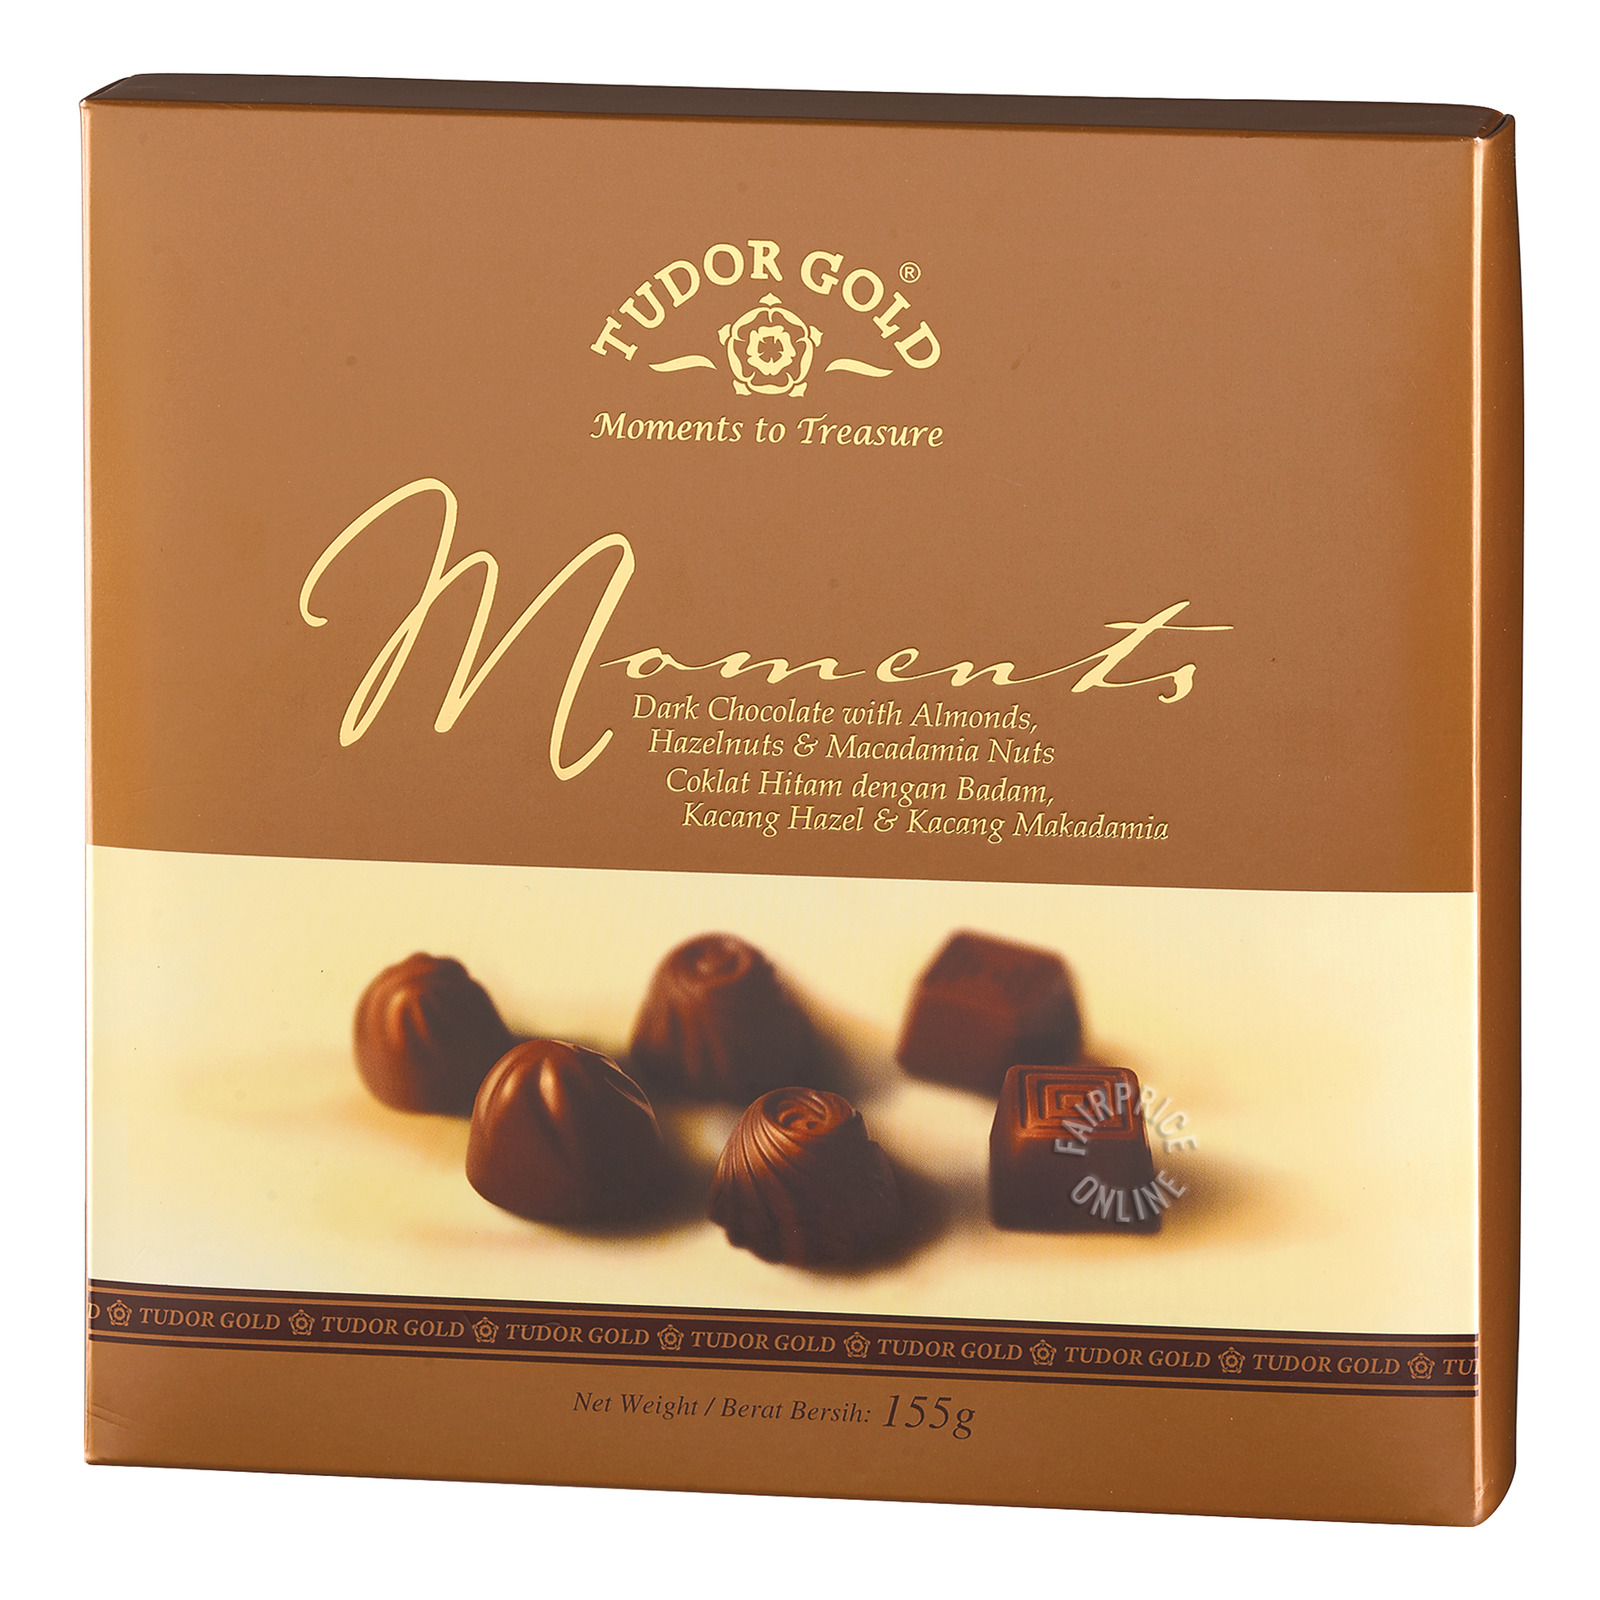 Tudor Gold Dark Chocolate with Almond, Hazelnuts & Macadamia